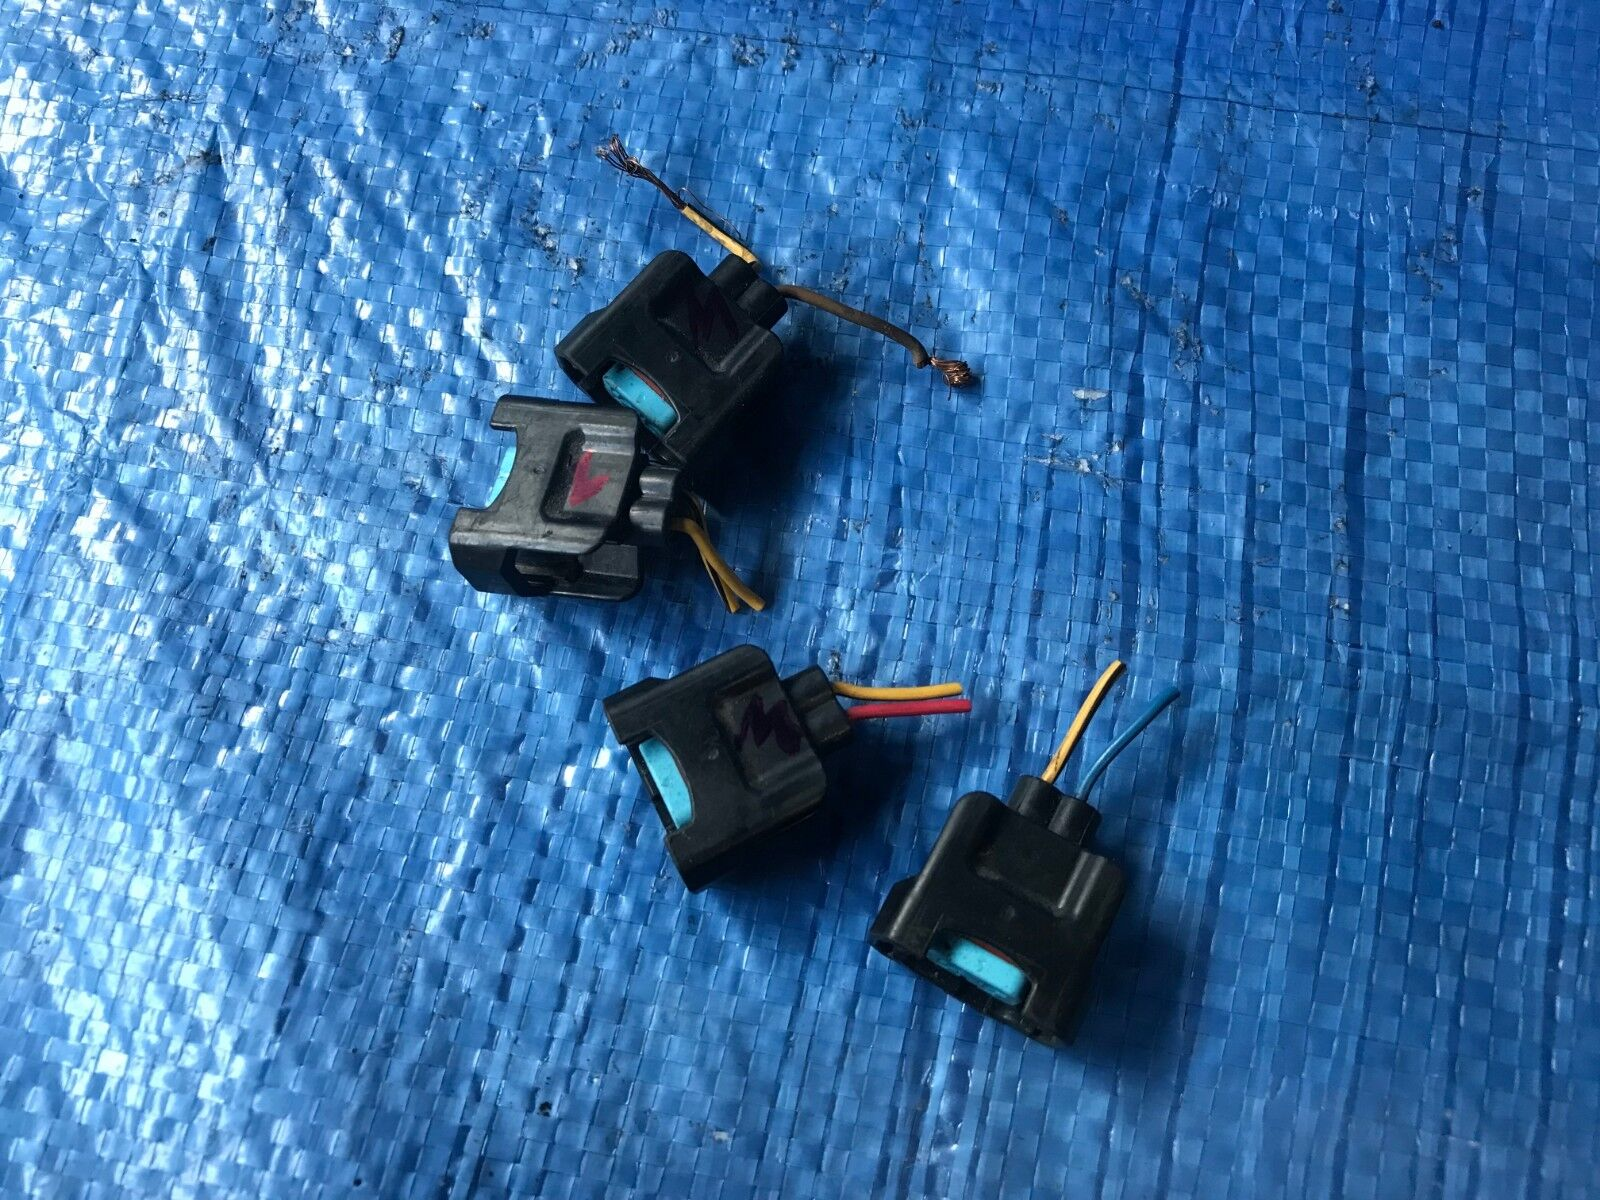 Used Honda S2000 Fuel Injection Parts For Sale Wiring Harness 2002 Oem 2003 Ap1 V2 F20c1 Engine Pig Tail Set Of 4 2000 2001 2004 2005